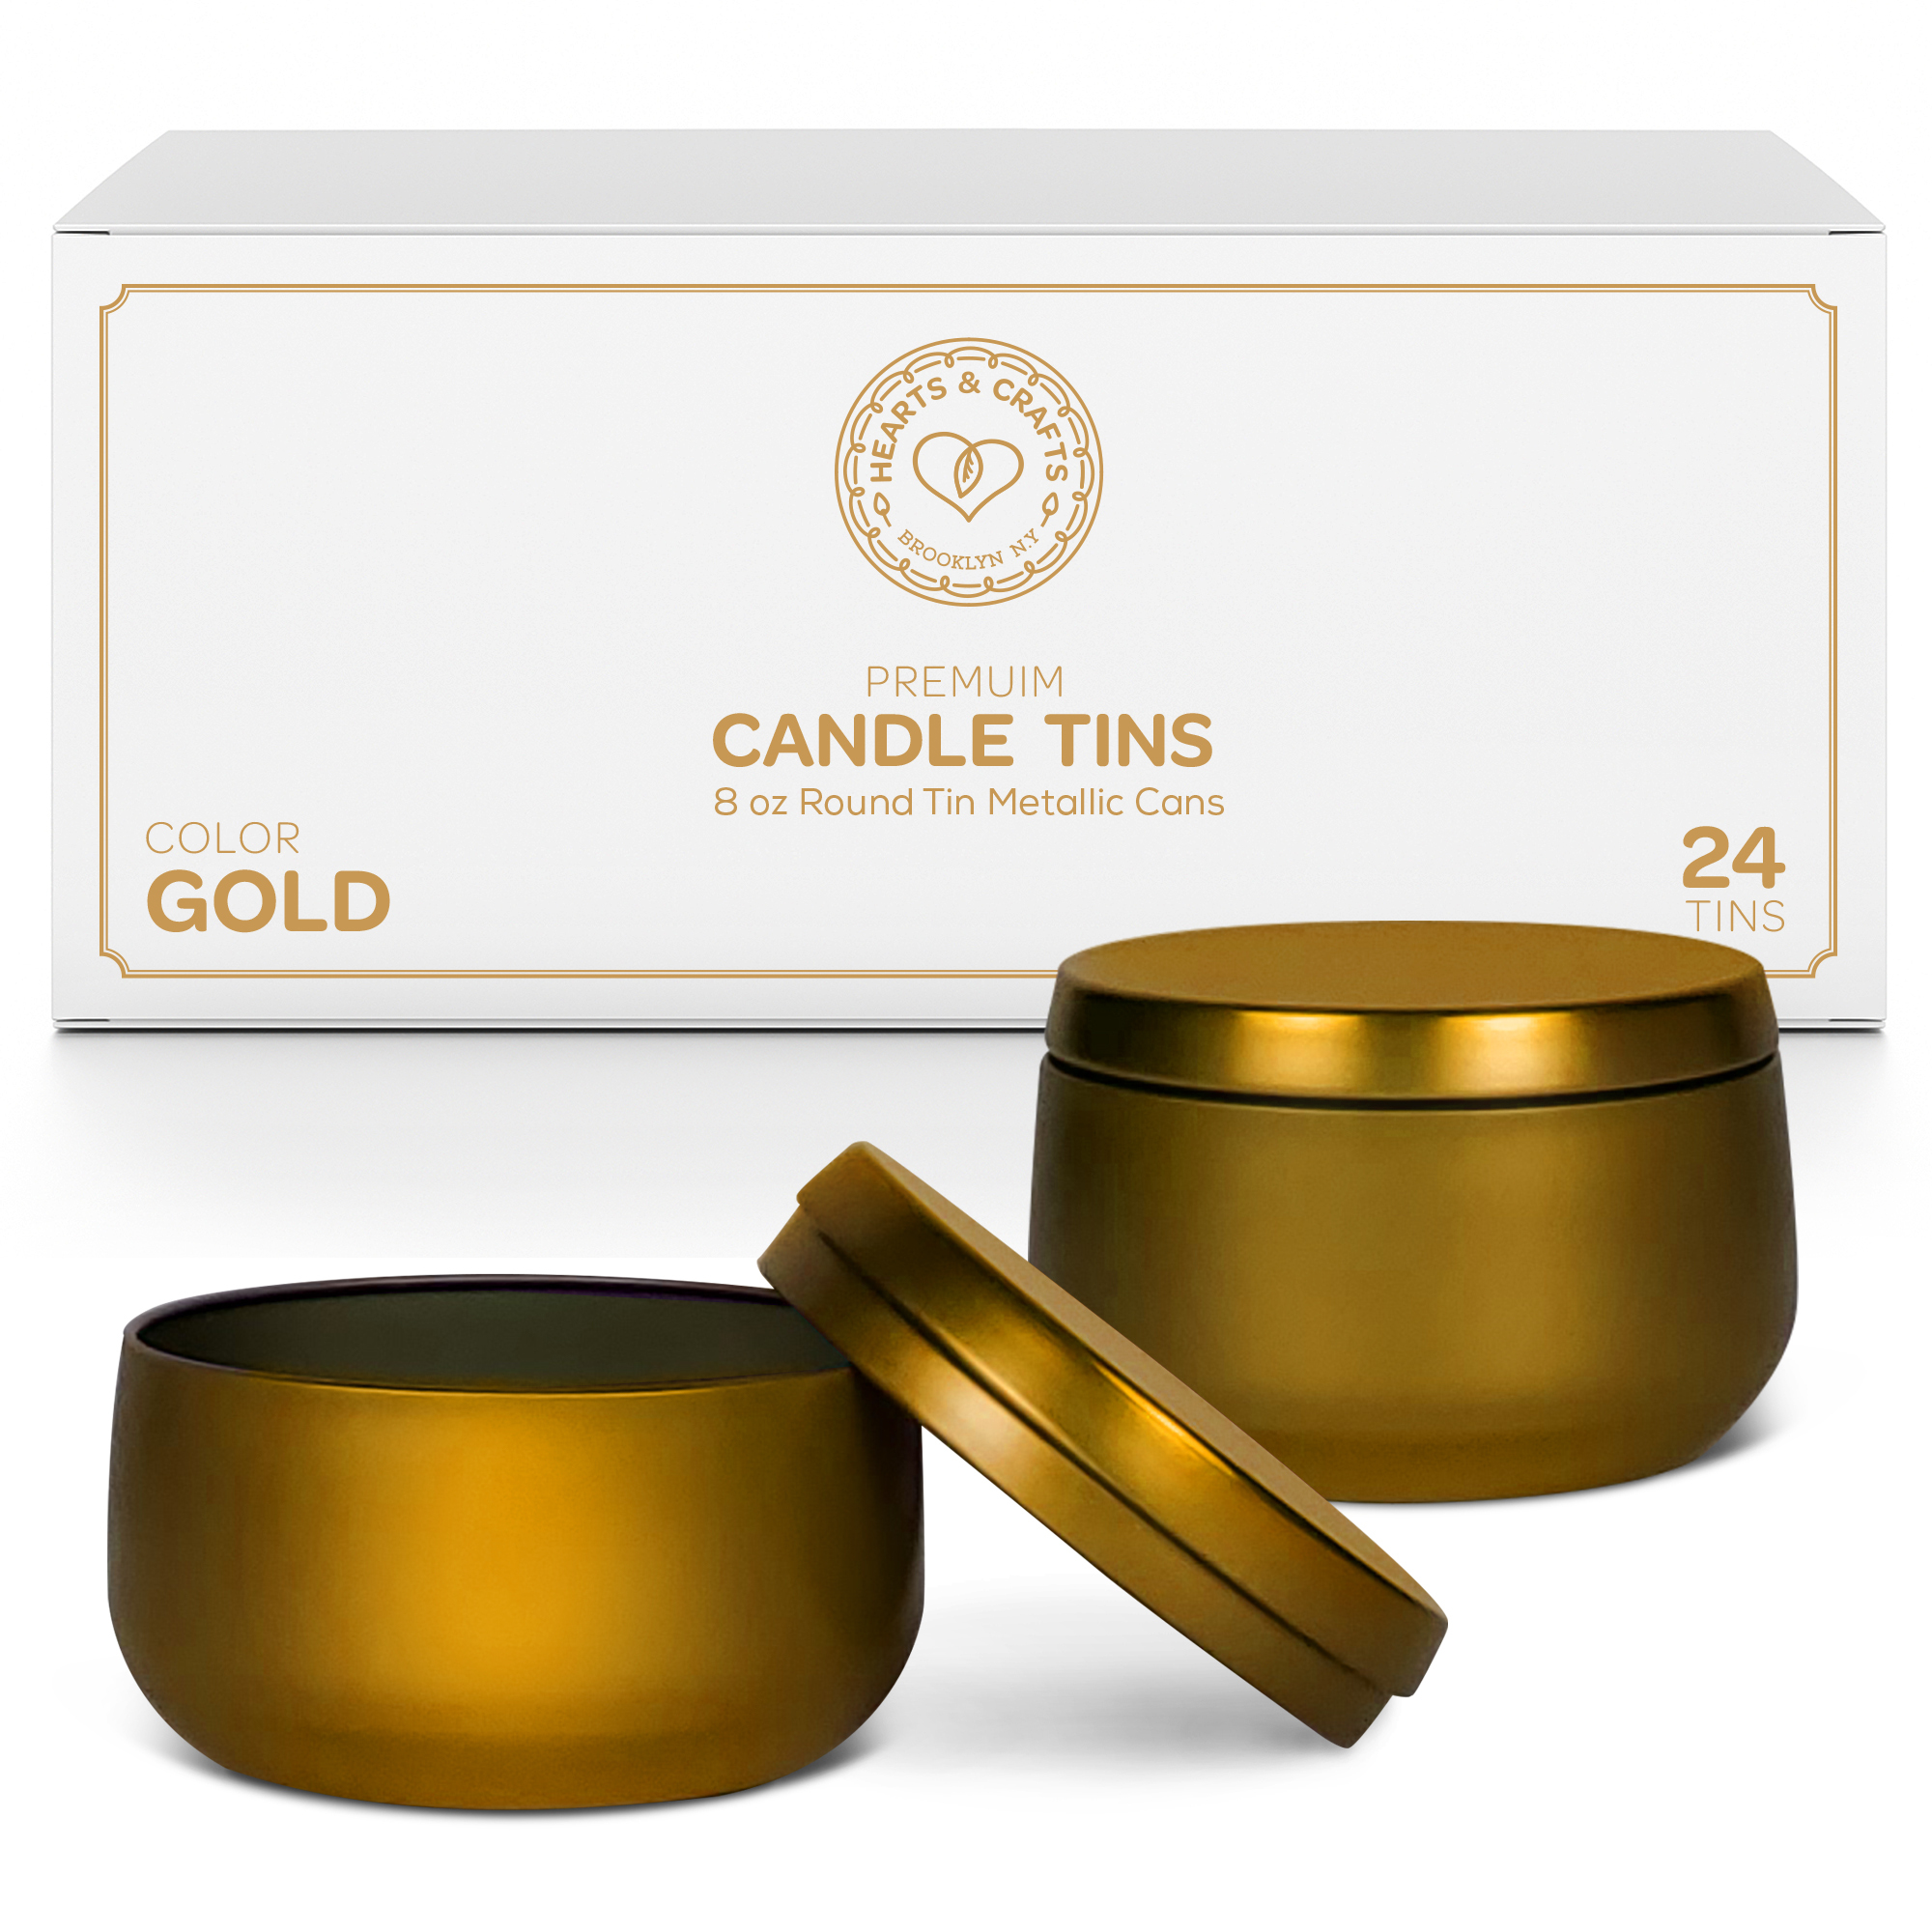 8oz Gold Candle Tins – 24 Count